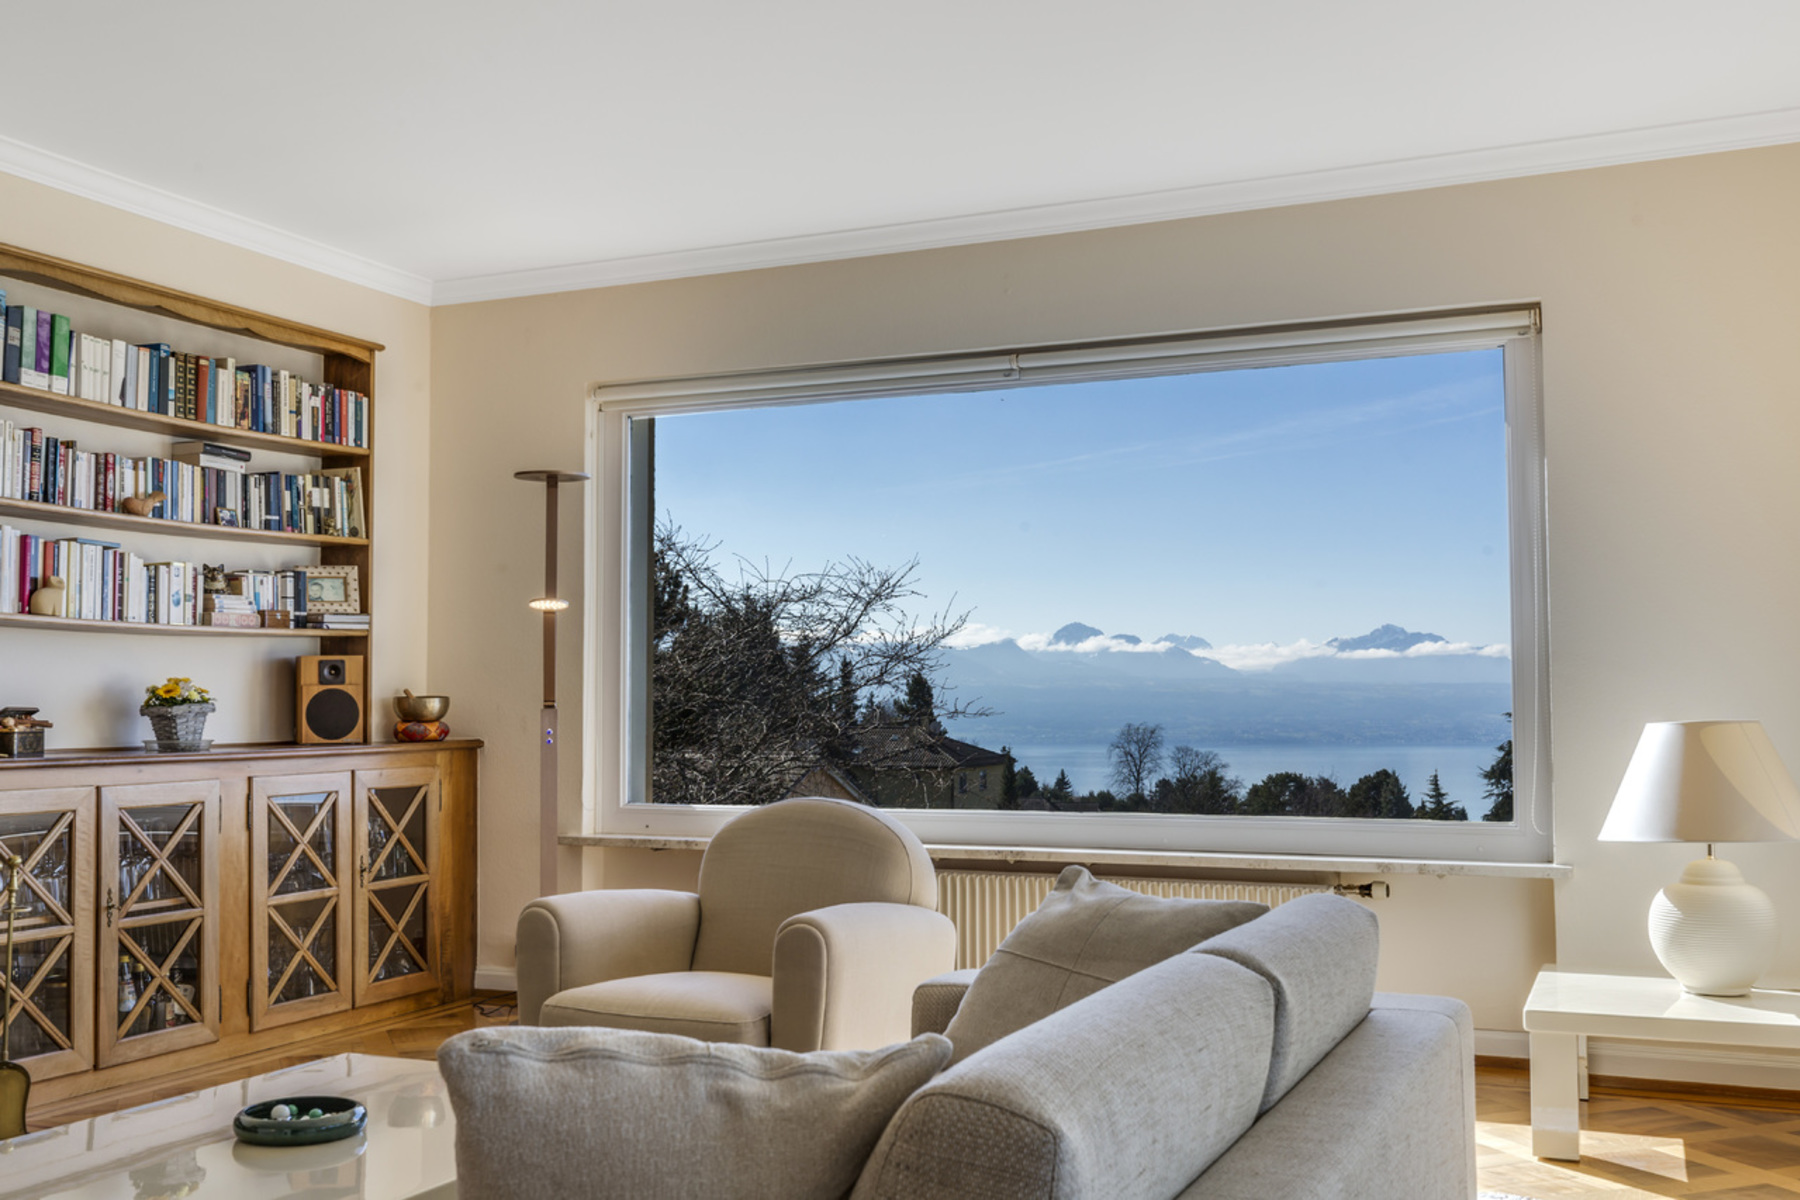 Tek Ailelik Ev için Satış at Beautiful classical property offering 8.5 rooms - First-class address Lausanne Lausanne, Vaud, 1012 Isviçre